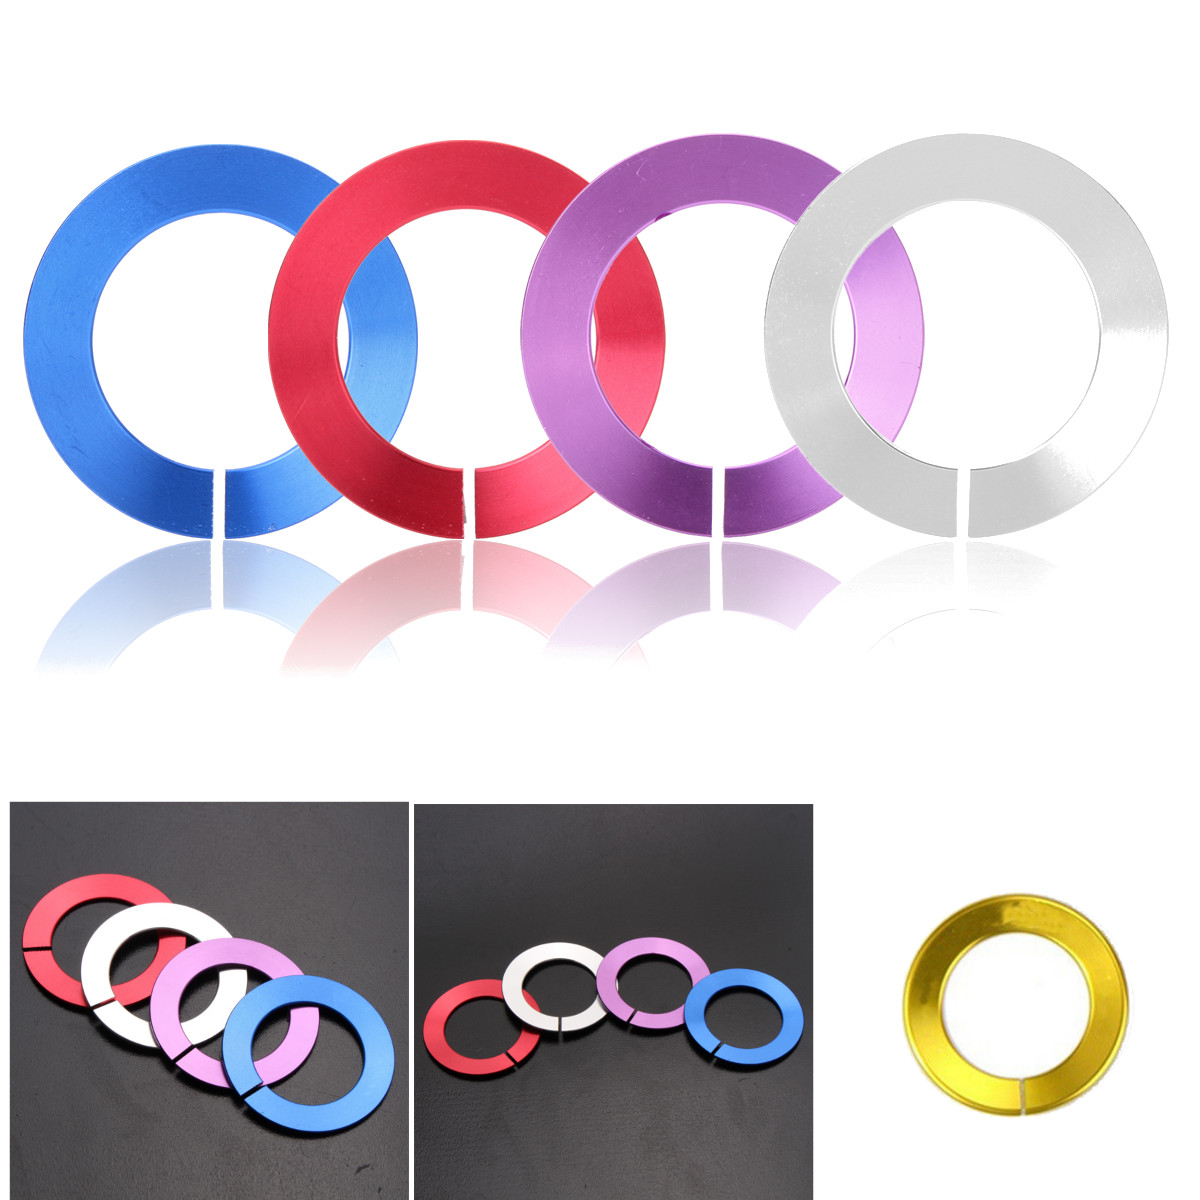 Metal Aluminium Interior Tirm Q50L QX60 Ring Trim Sticker Car Parts For Infinitis Q50 Start Stop Key shell Cover For decoration